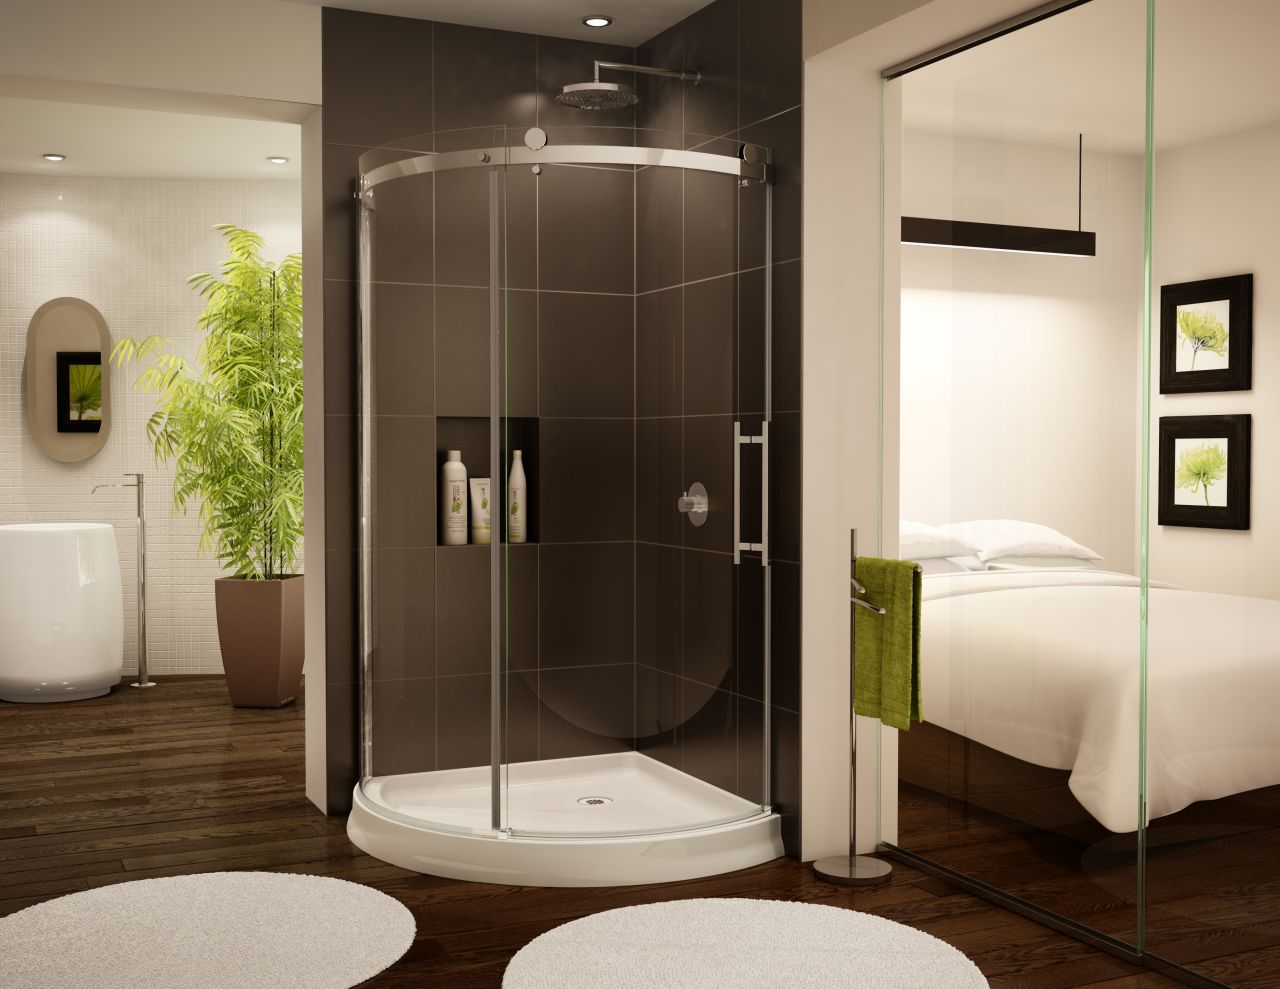 Bathroom modern bathroom tile designs with glass shelves options in - Acrylic Shower Base Innovate Building Solutions Blog